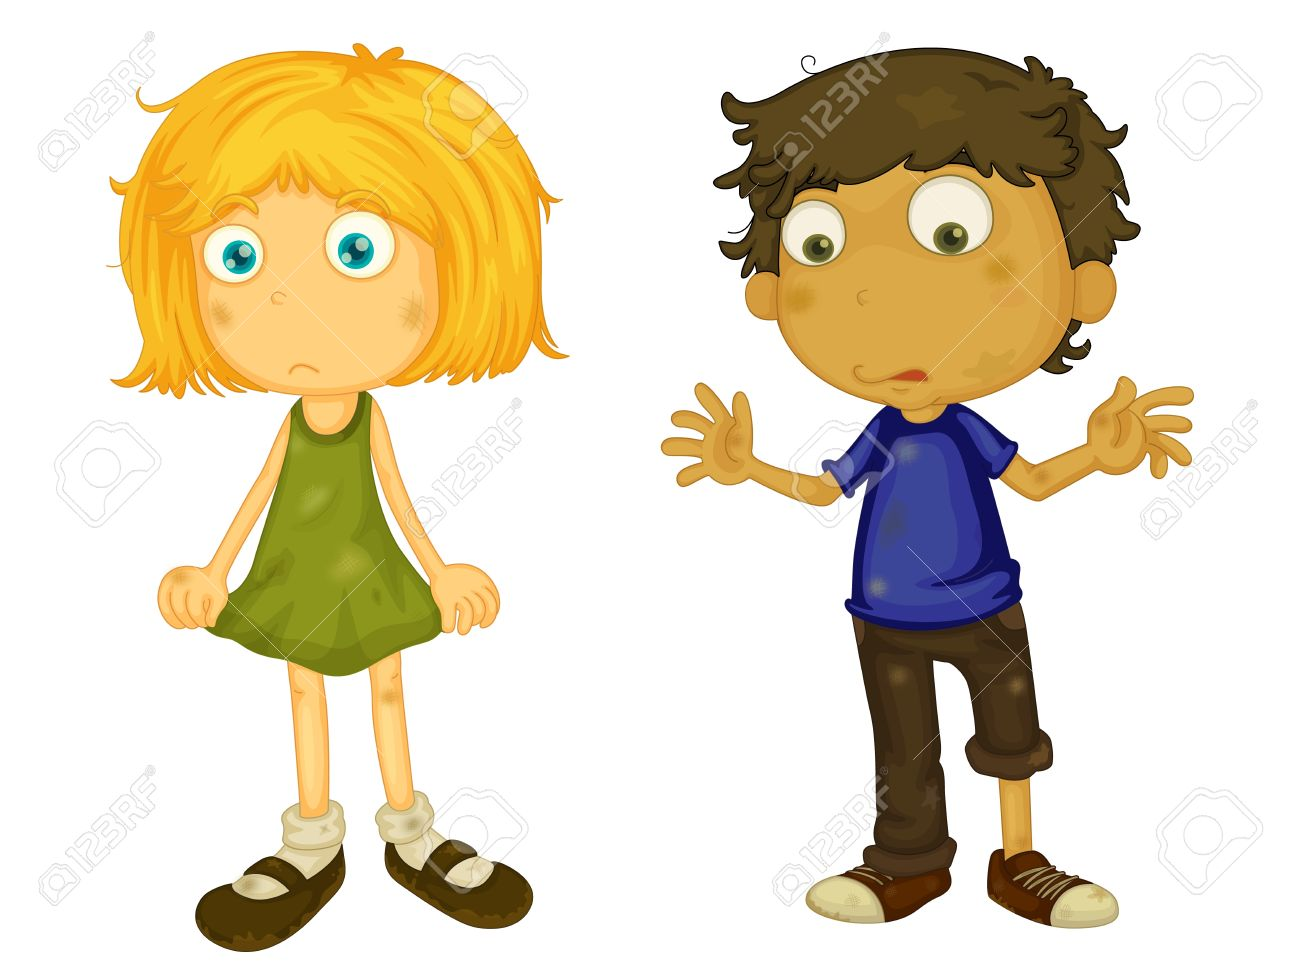 Illustration Of Dirty Boy And Girl Royalty Free Cliparts, Vectors.